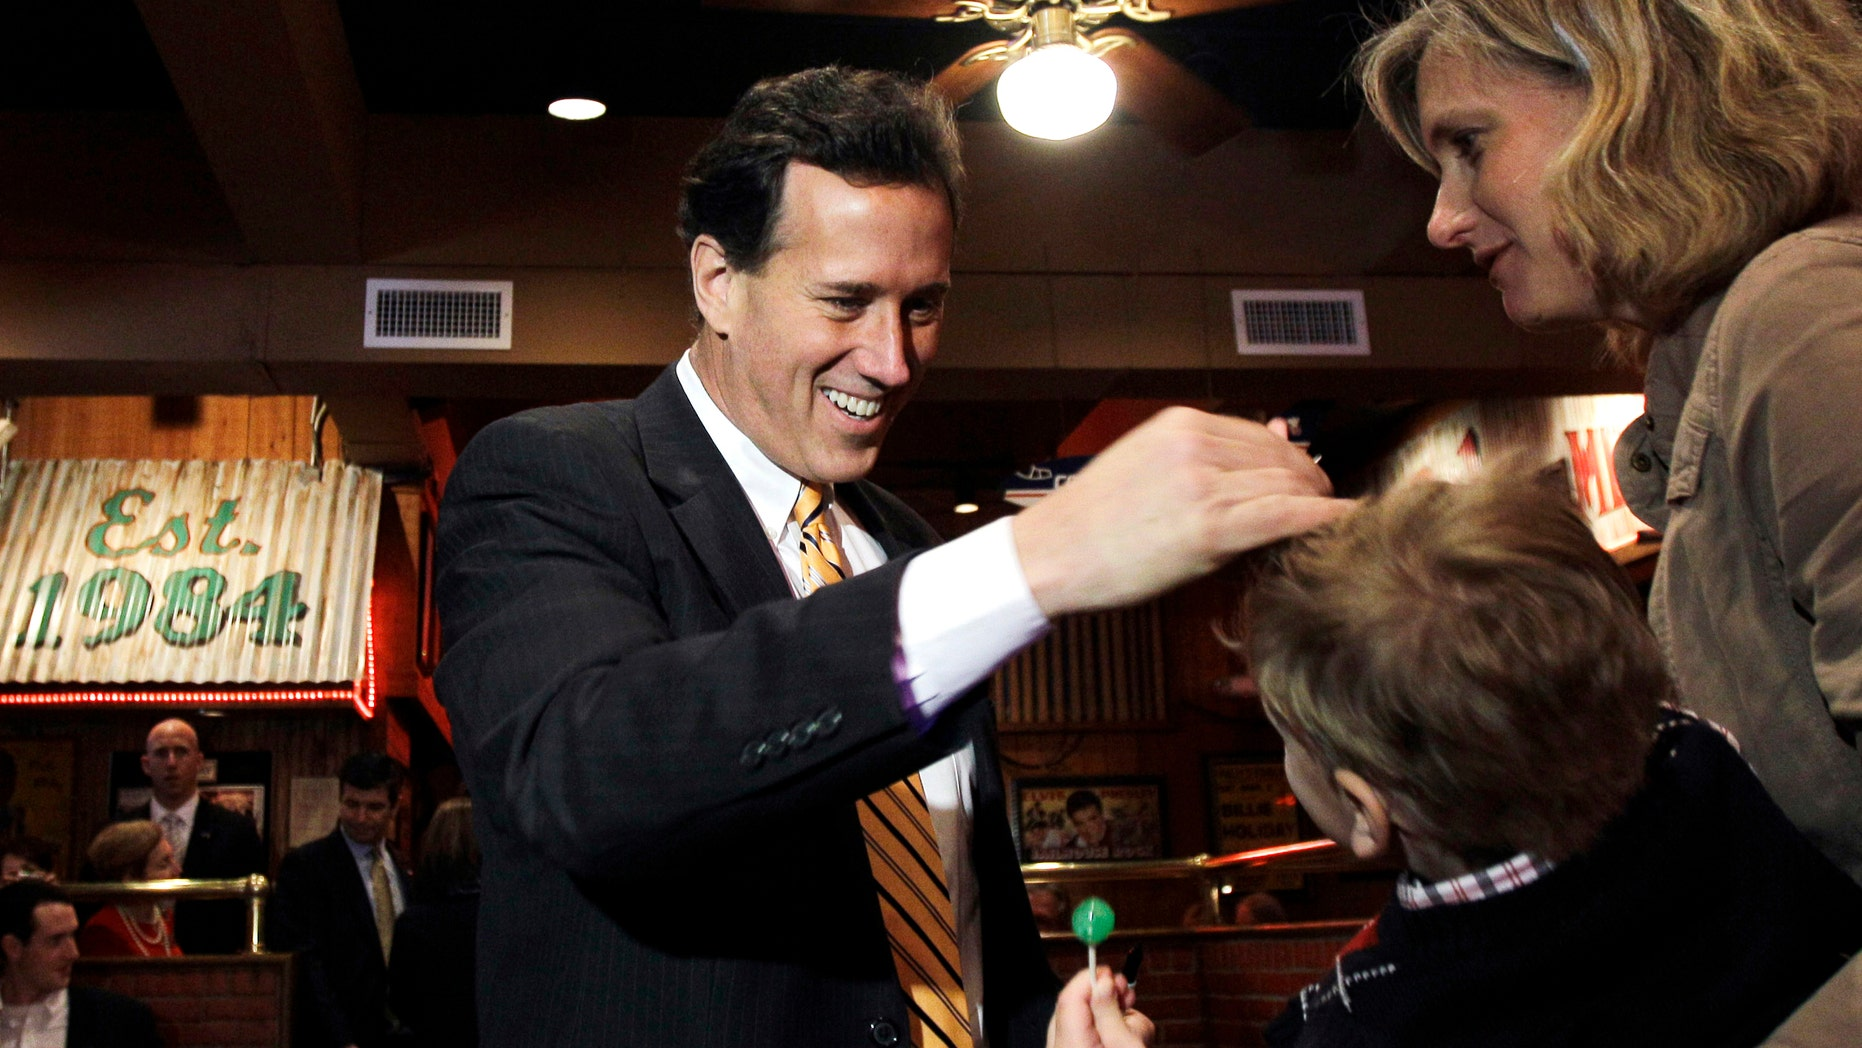 Republican presidential candidate, former Pennsylvania Sen. Rick Santorum, left, greets diners during a meet and greet at Corky's BBQ, Sunday, March 4, 2012, in Memphis, Tenn. (AP Photo/Eric Gay)